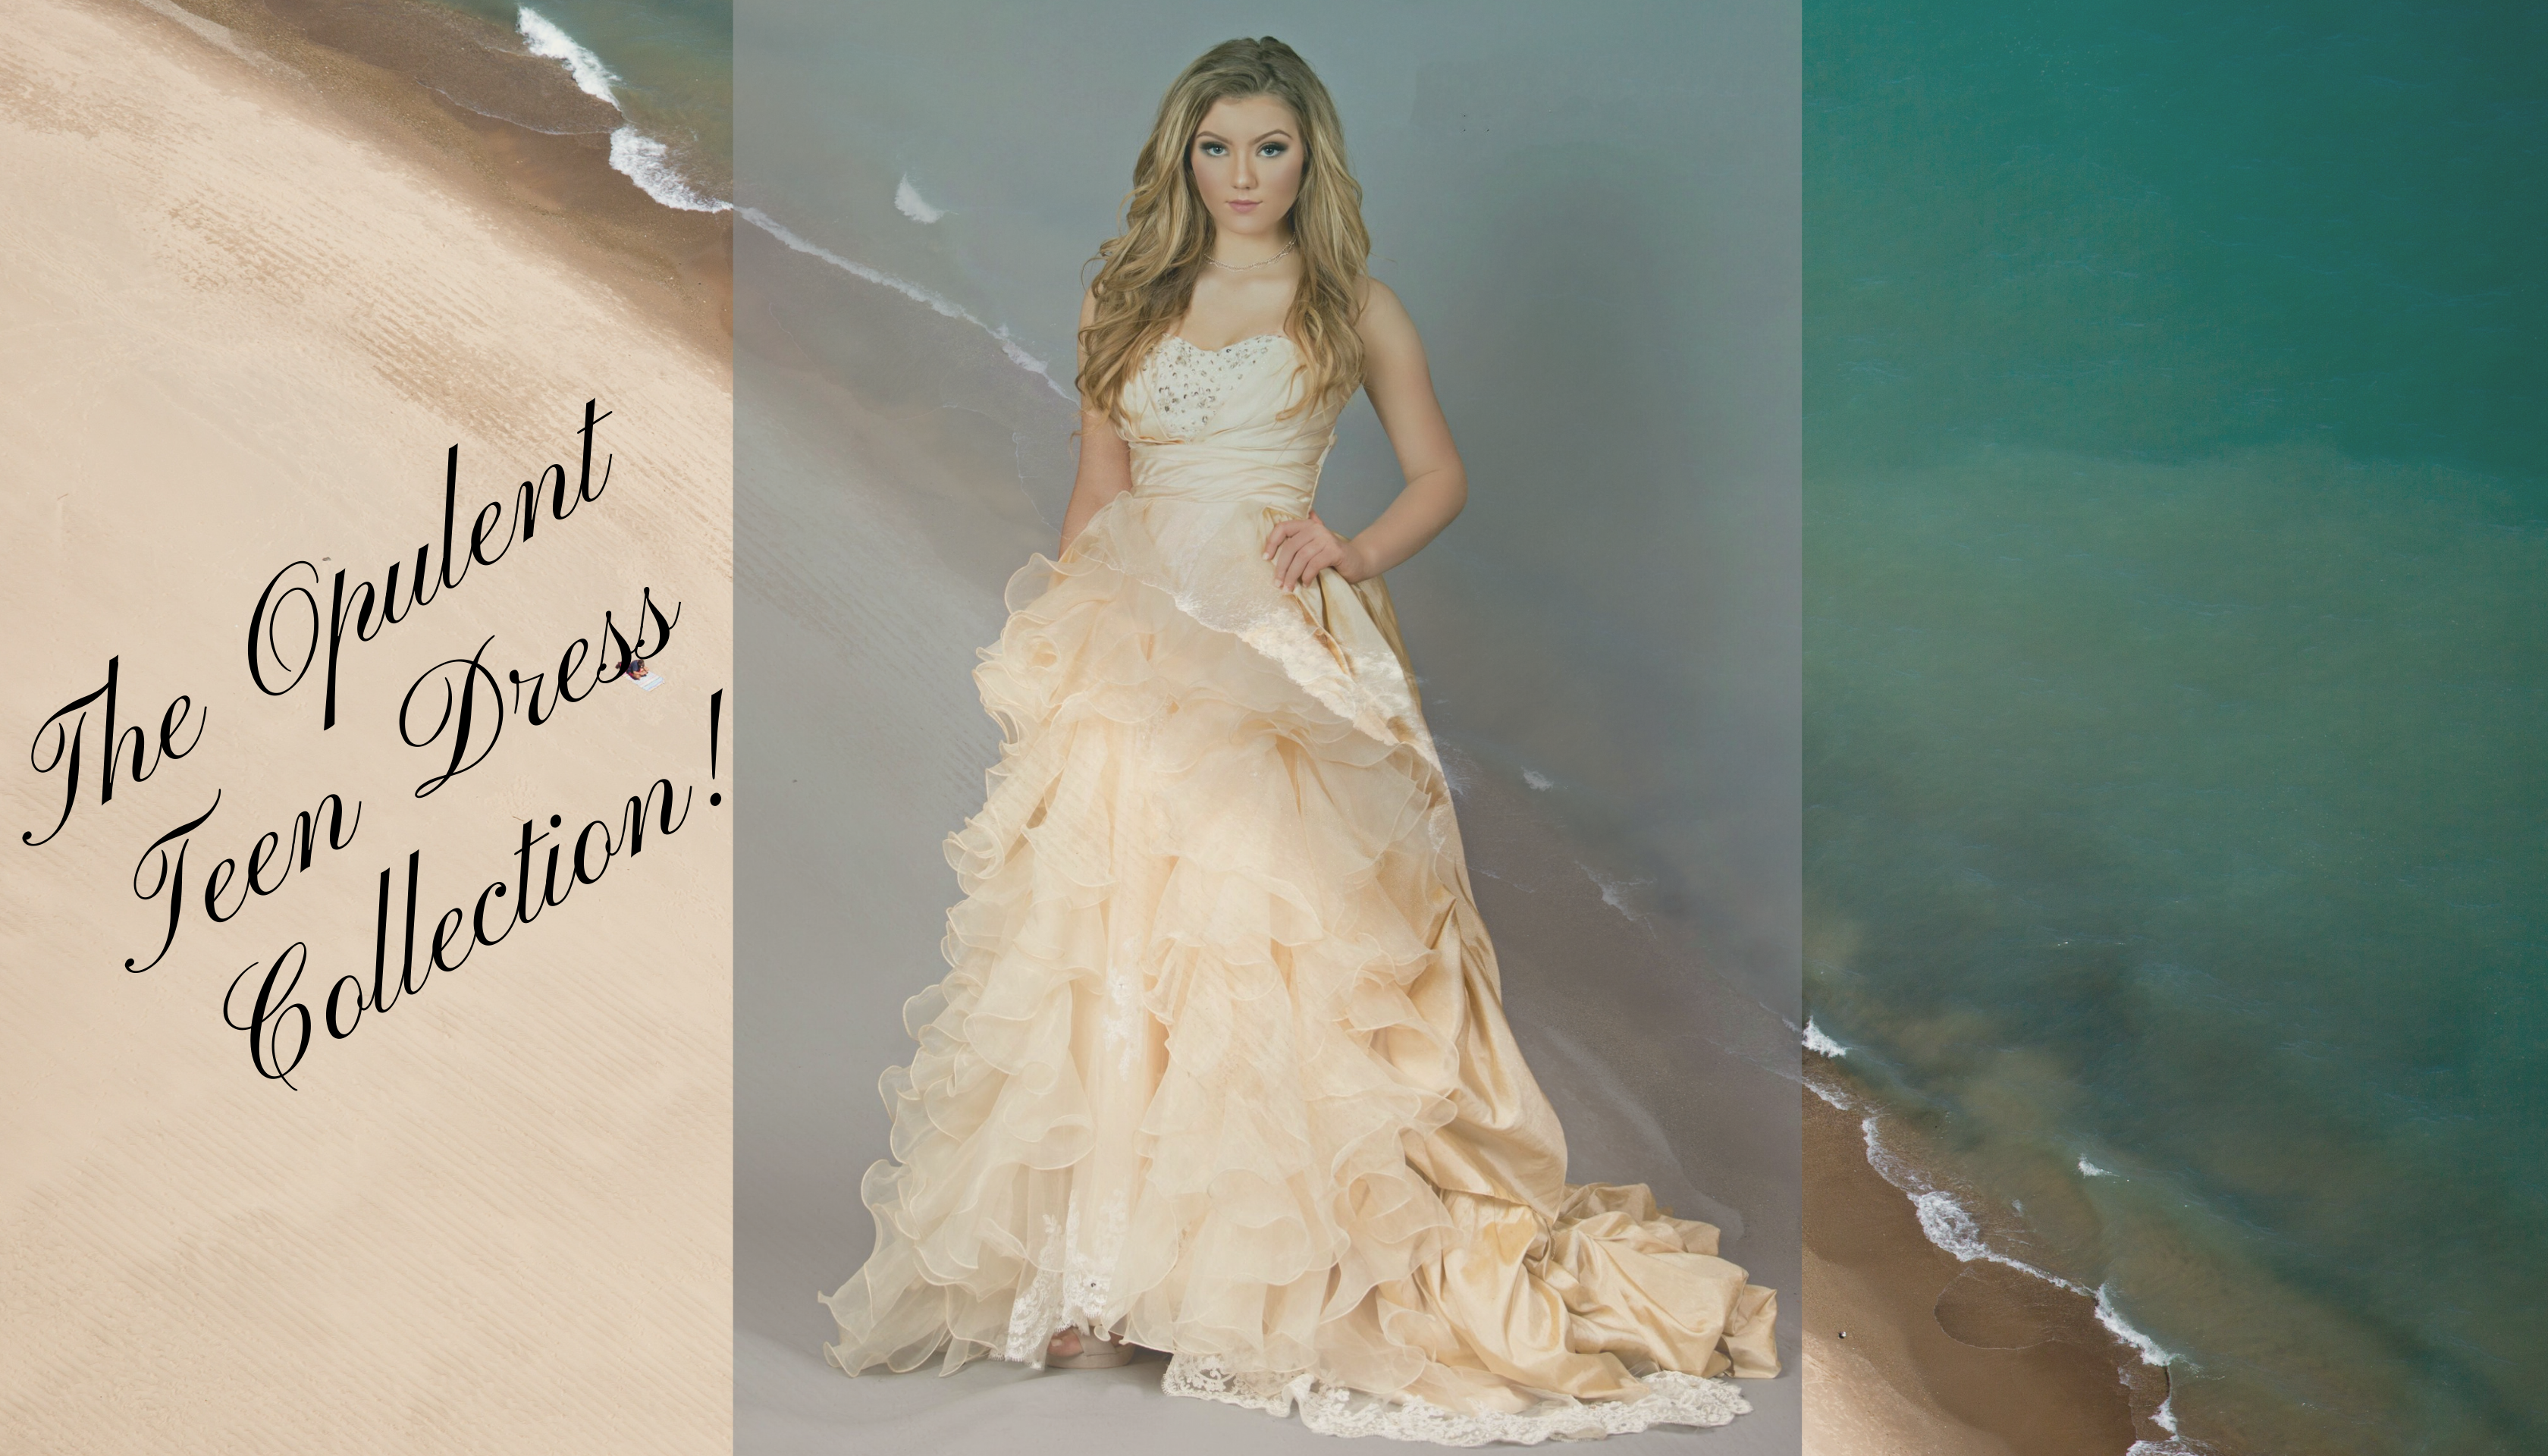 the-opulent-teen-dress-collection-.png